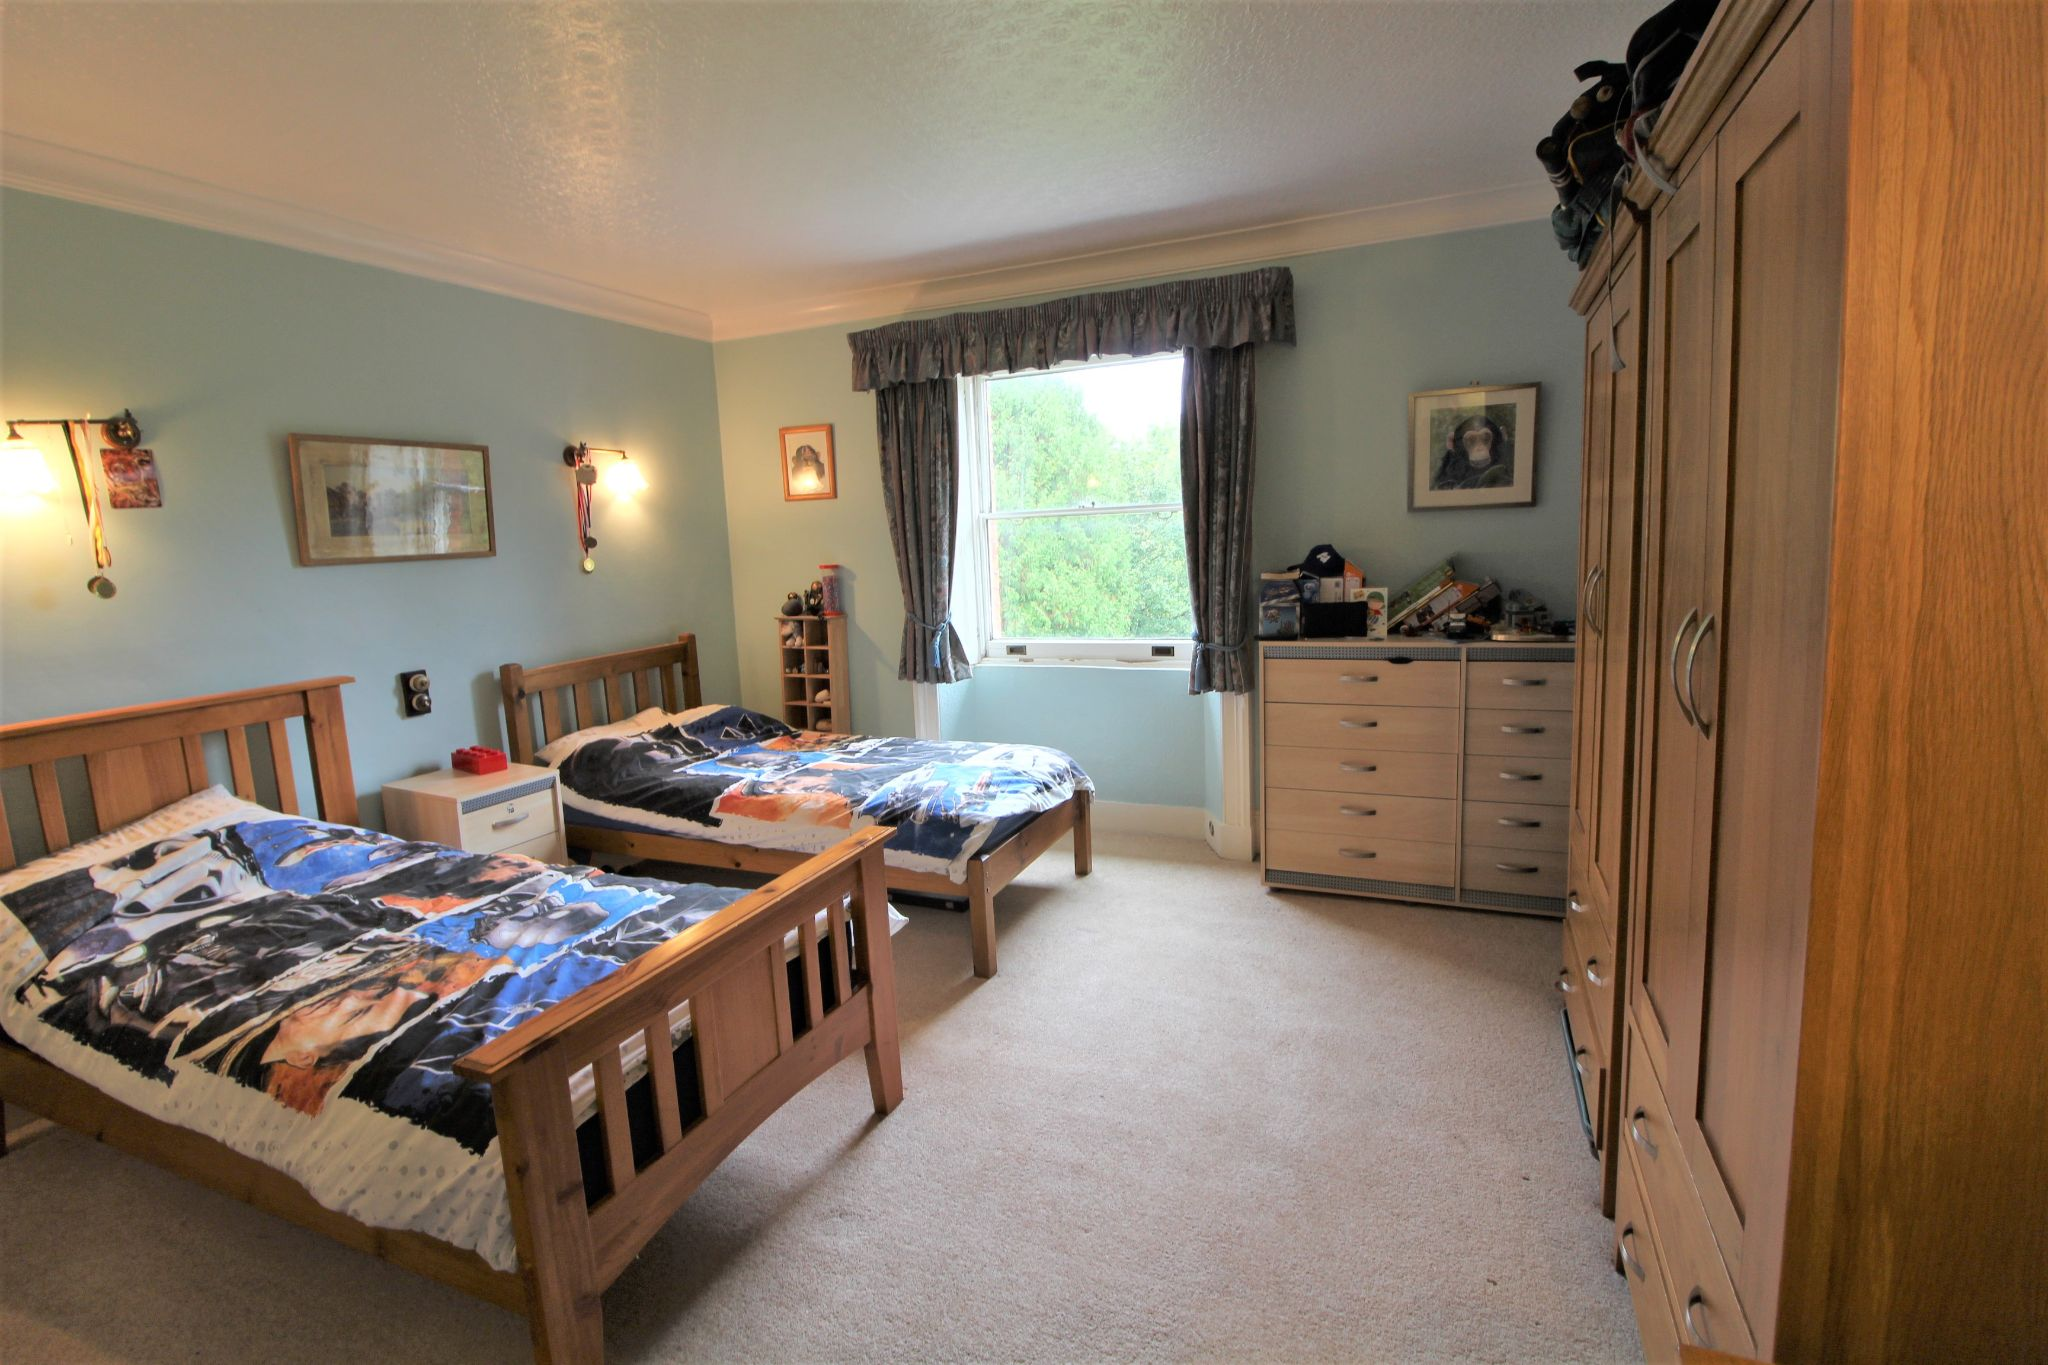 6 bedroom mews house For Sale in Brookmans Park - Photograph 21